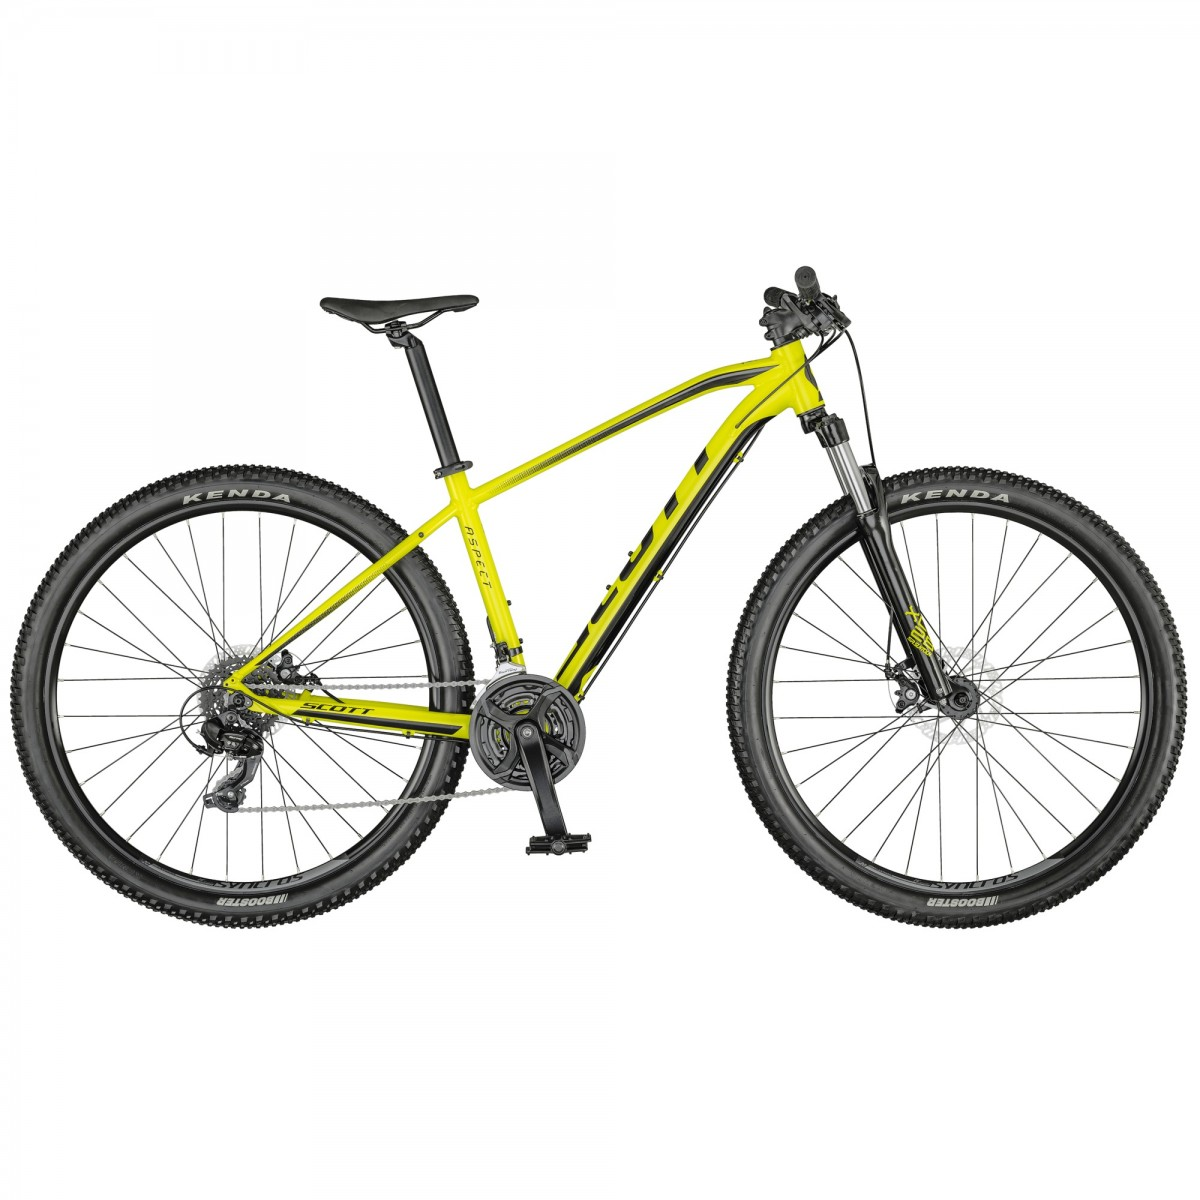 BICICLETA SCOTT ASPECT 970 YELLOW_2021